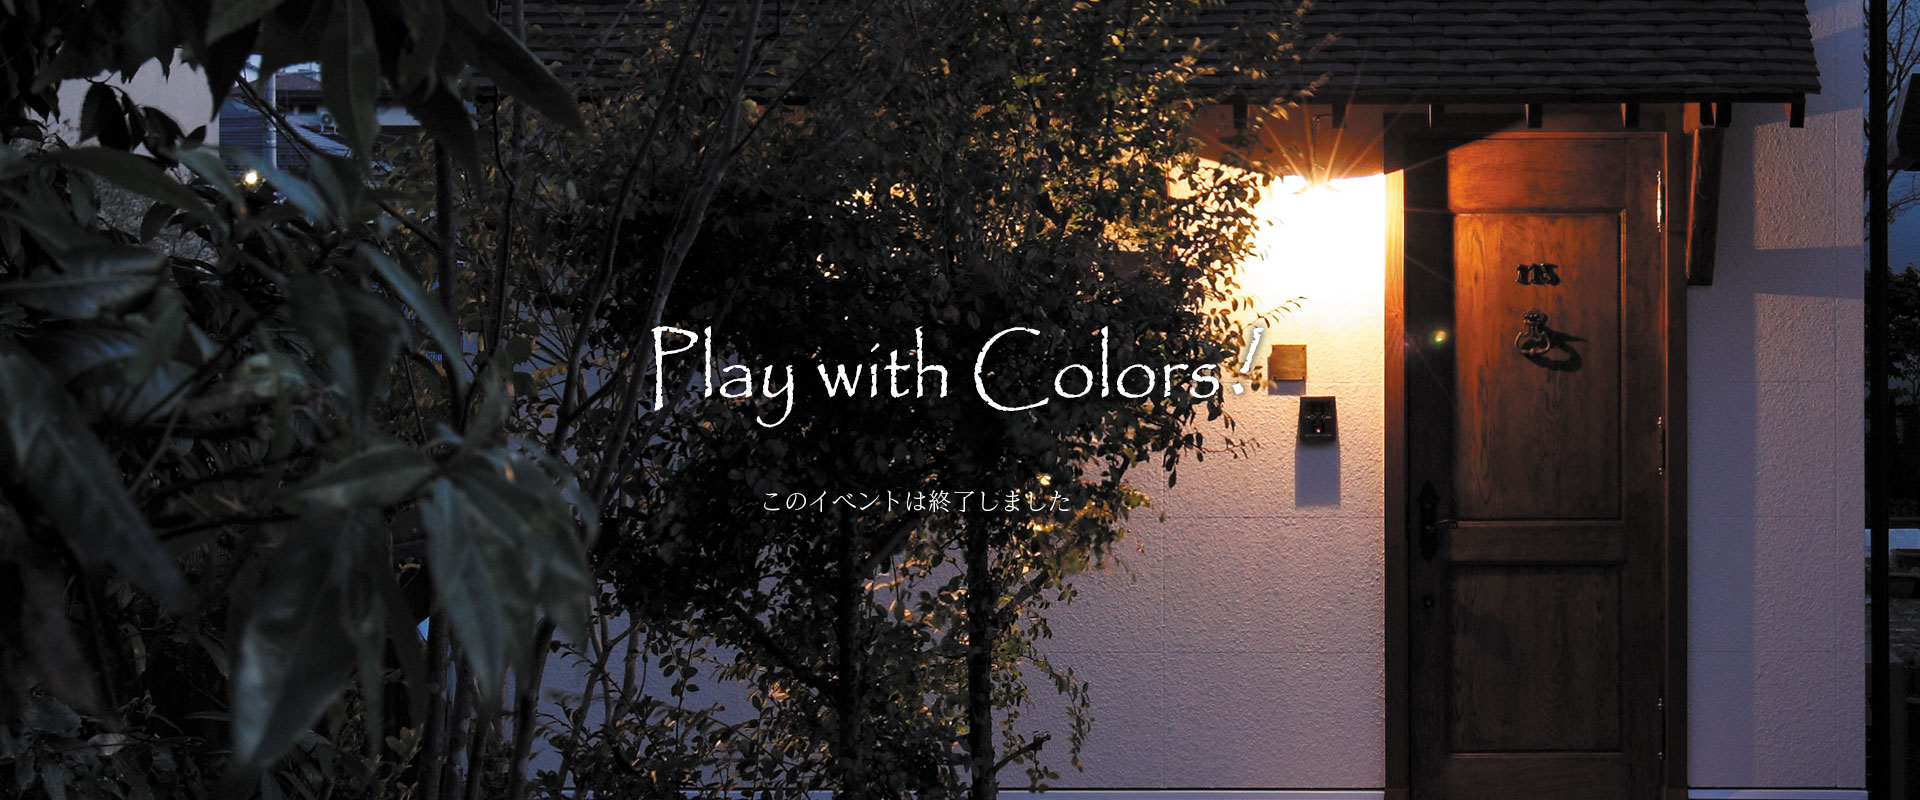 playwithcolors